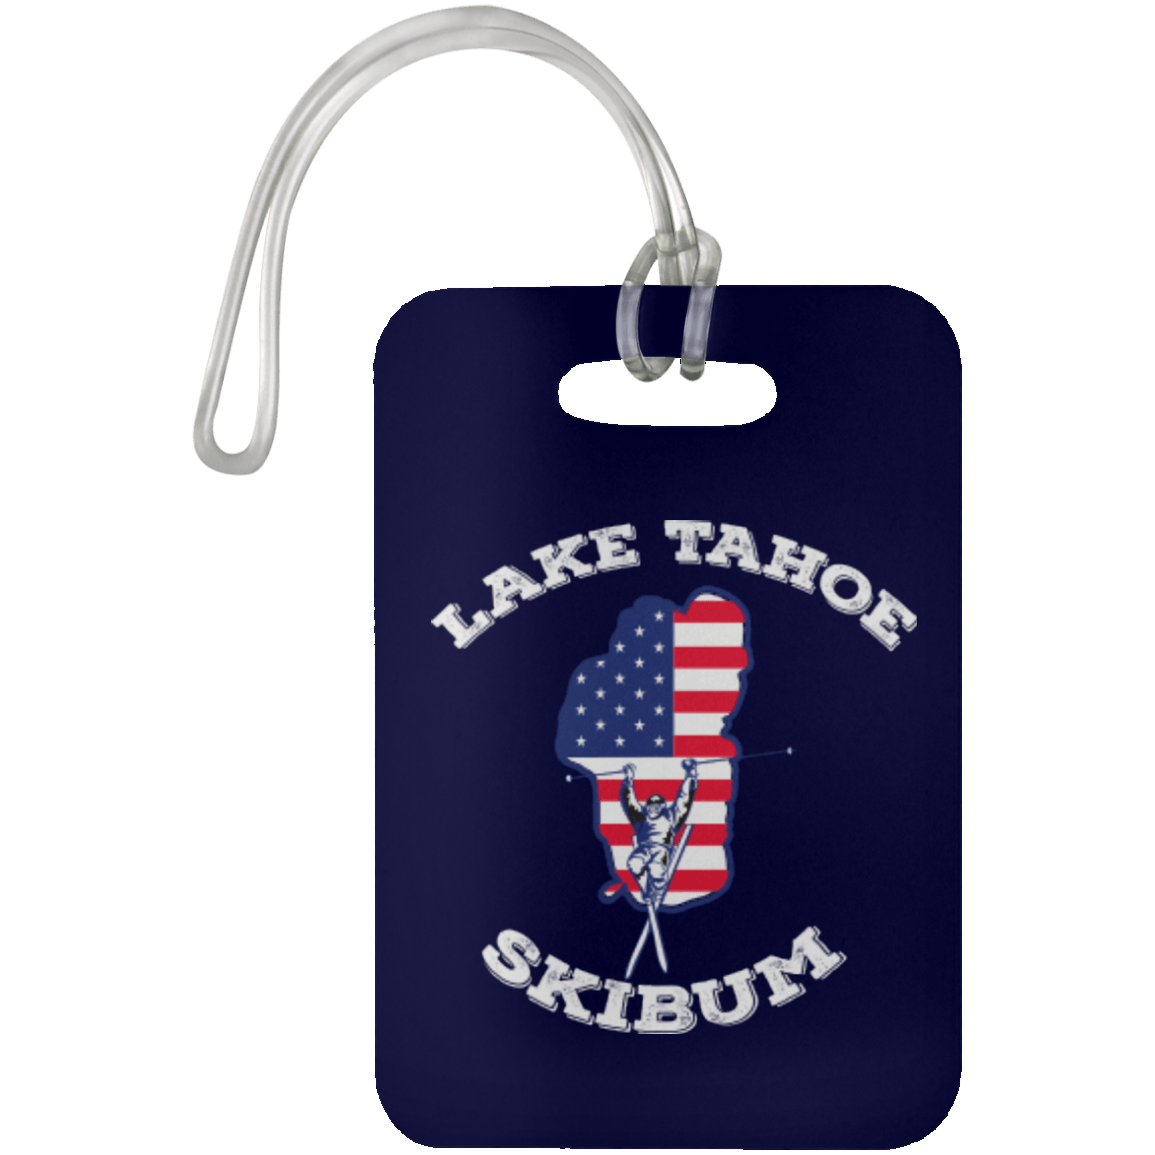 Lake Tahoe Ski Bum Luggage Bag Tag - White Text - Powderaddicts